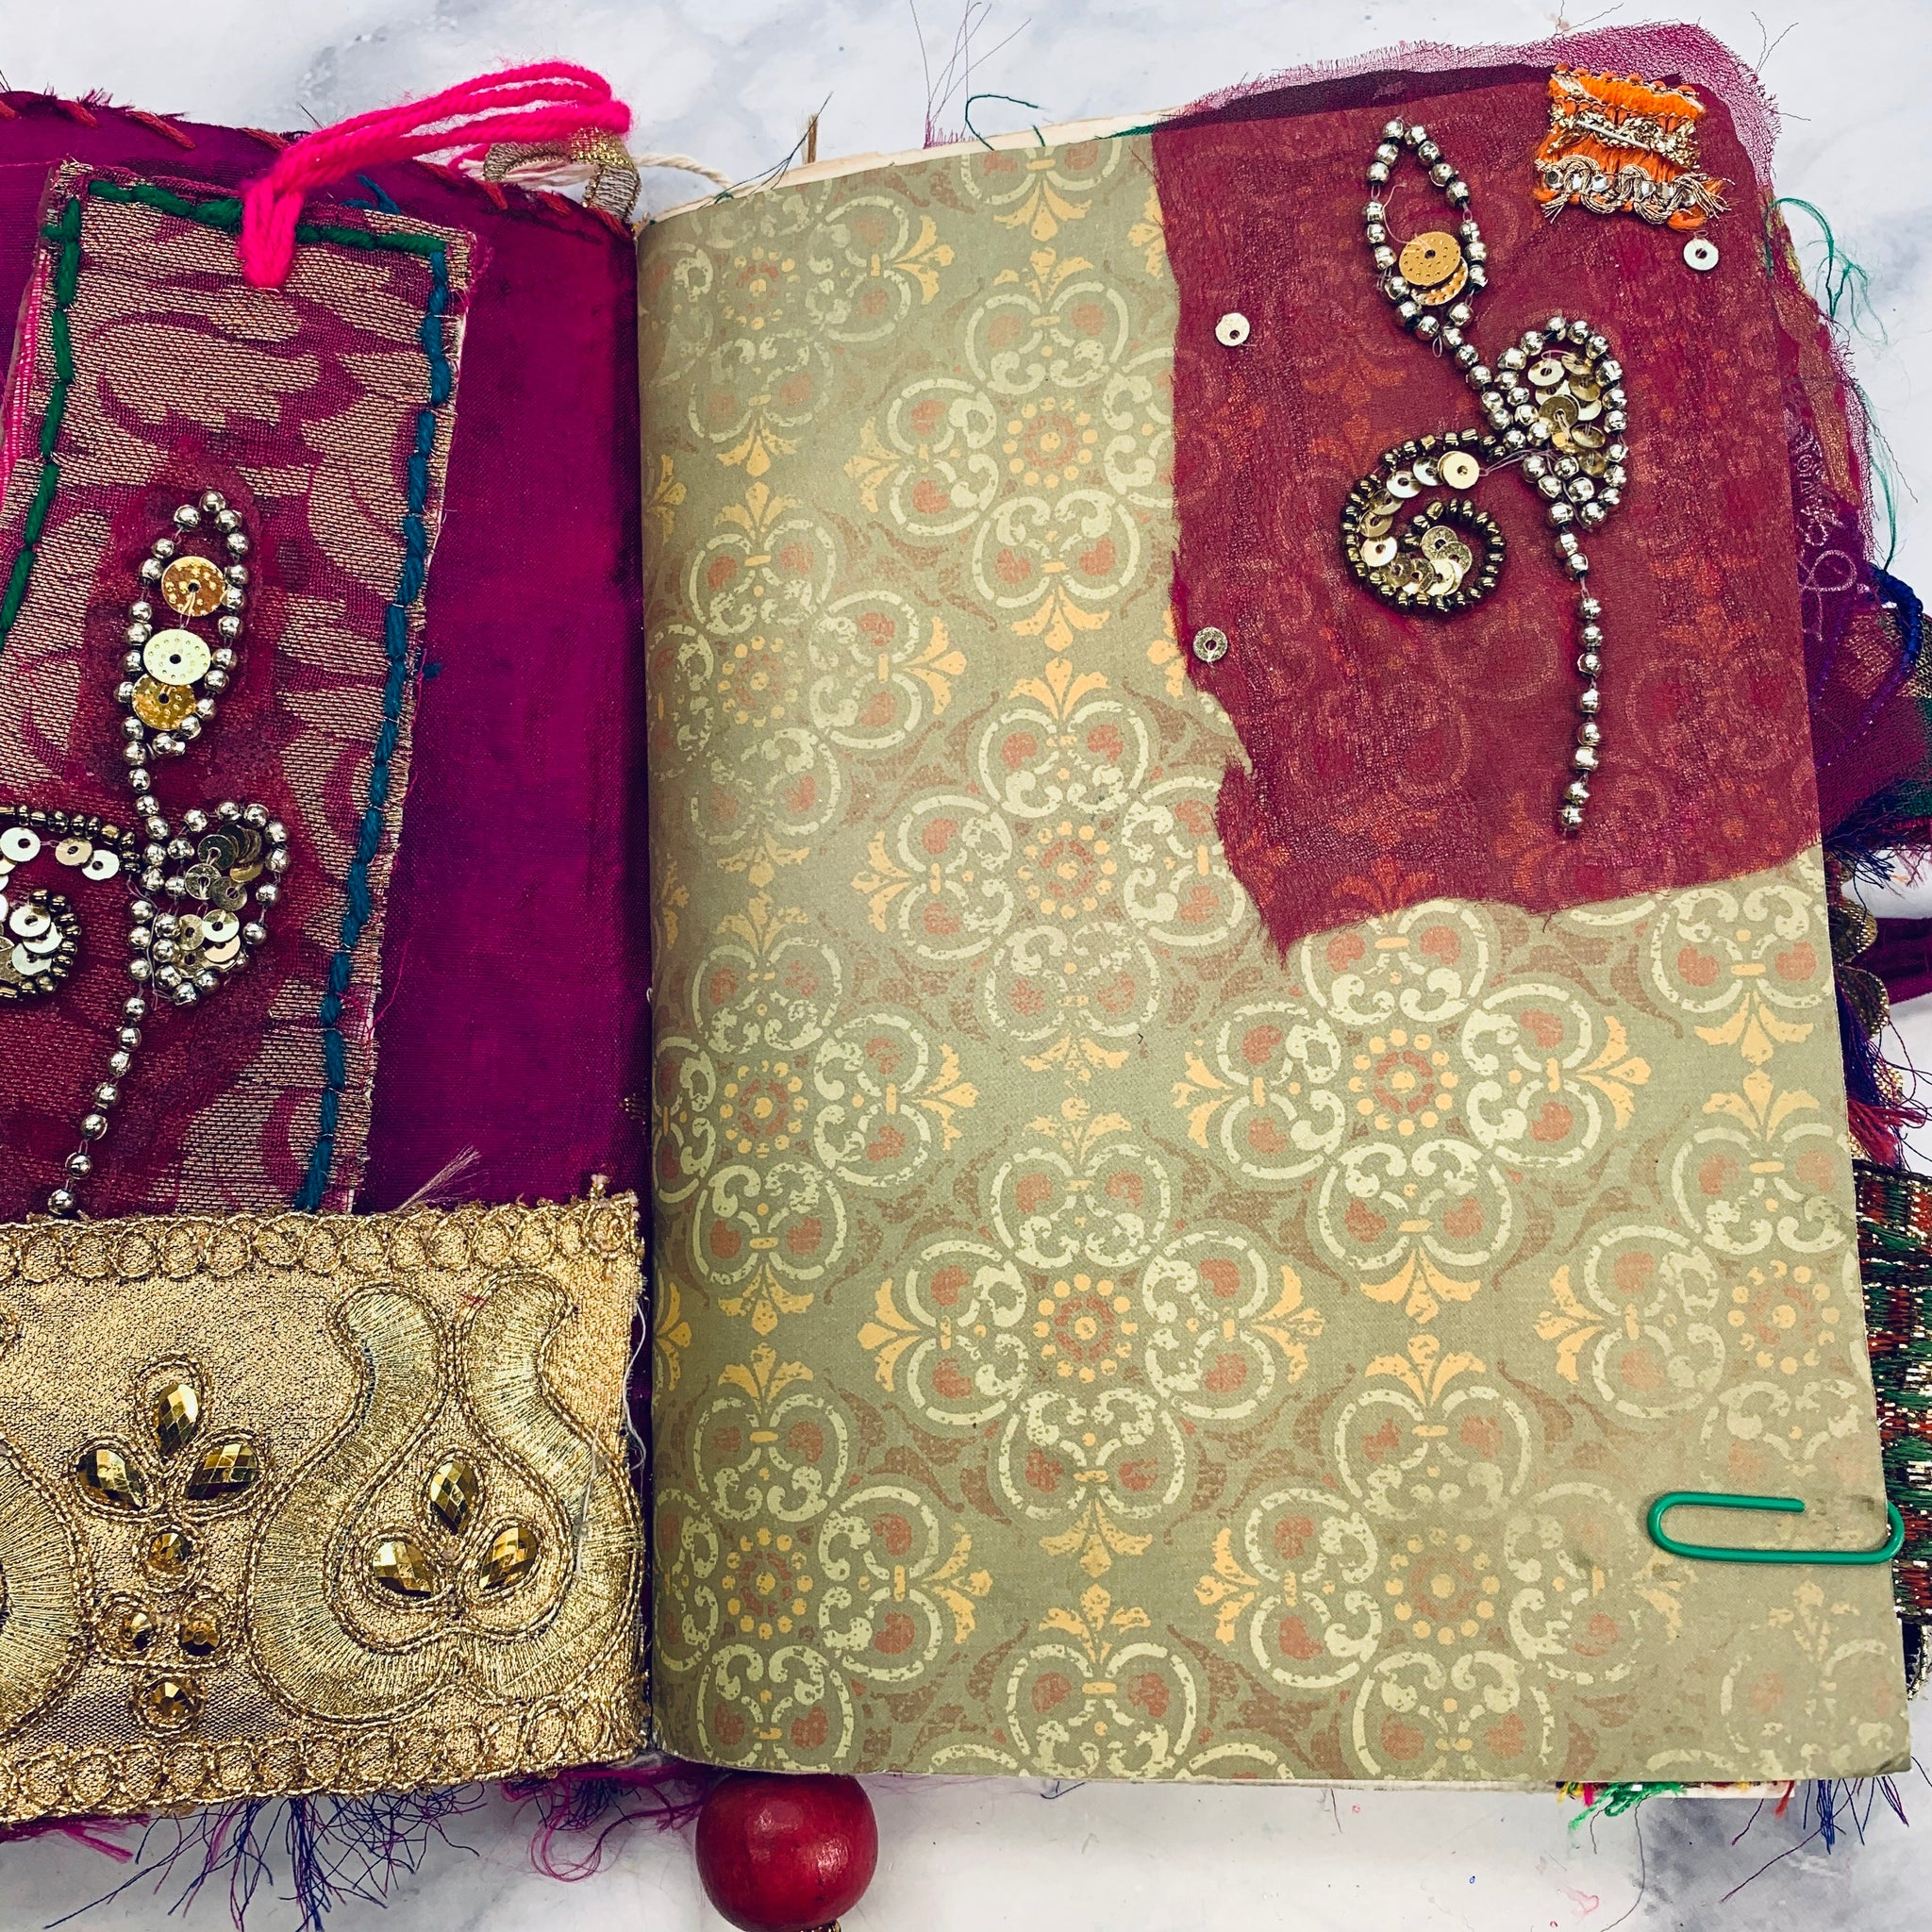 Bohemian Junk Journal by Mehataj from India